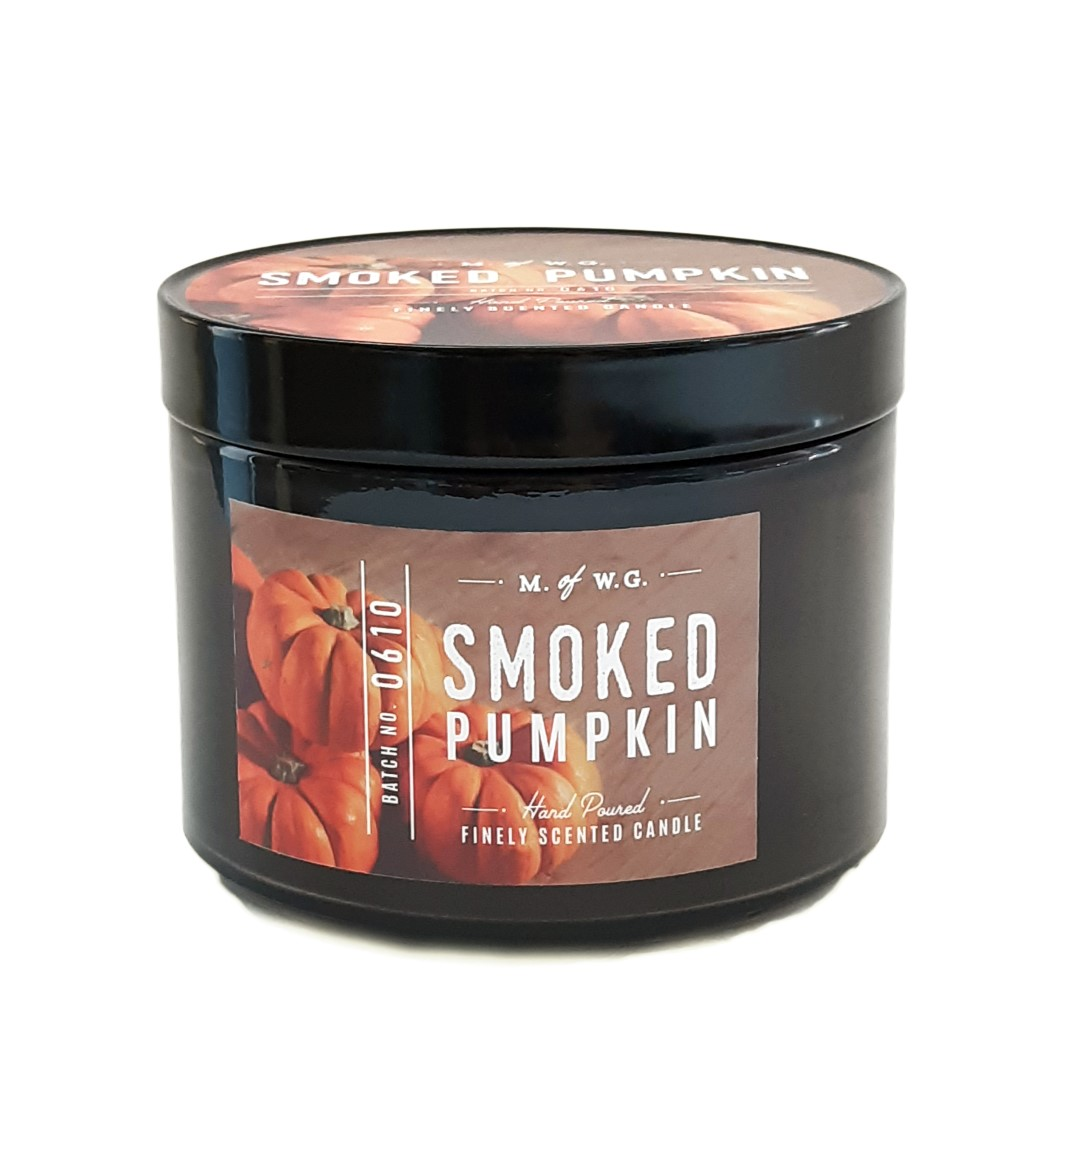 נר בצנצנת רחבה עם הדפס - Smoked Pumpkin